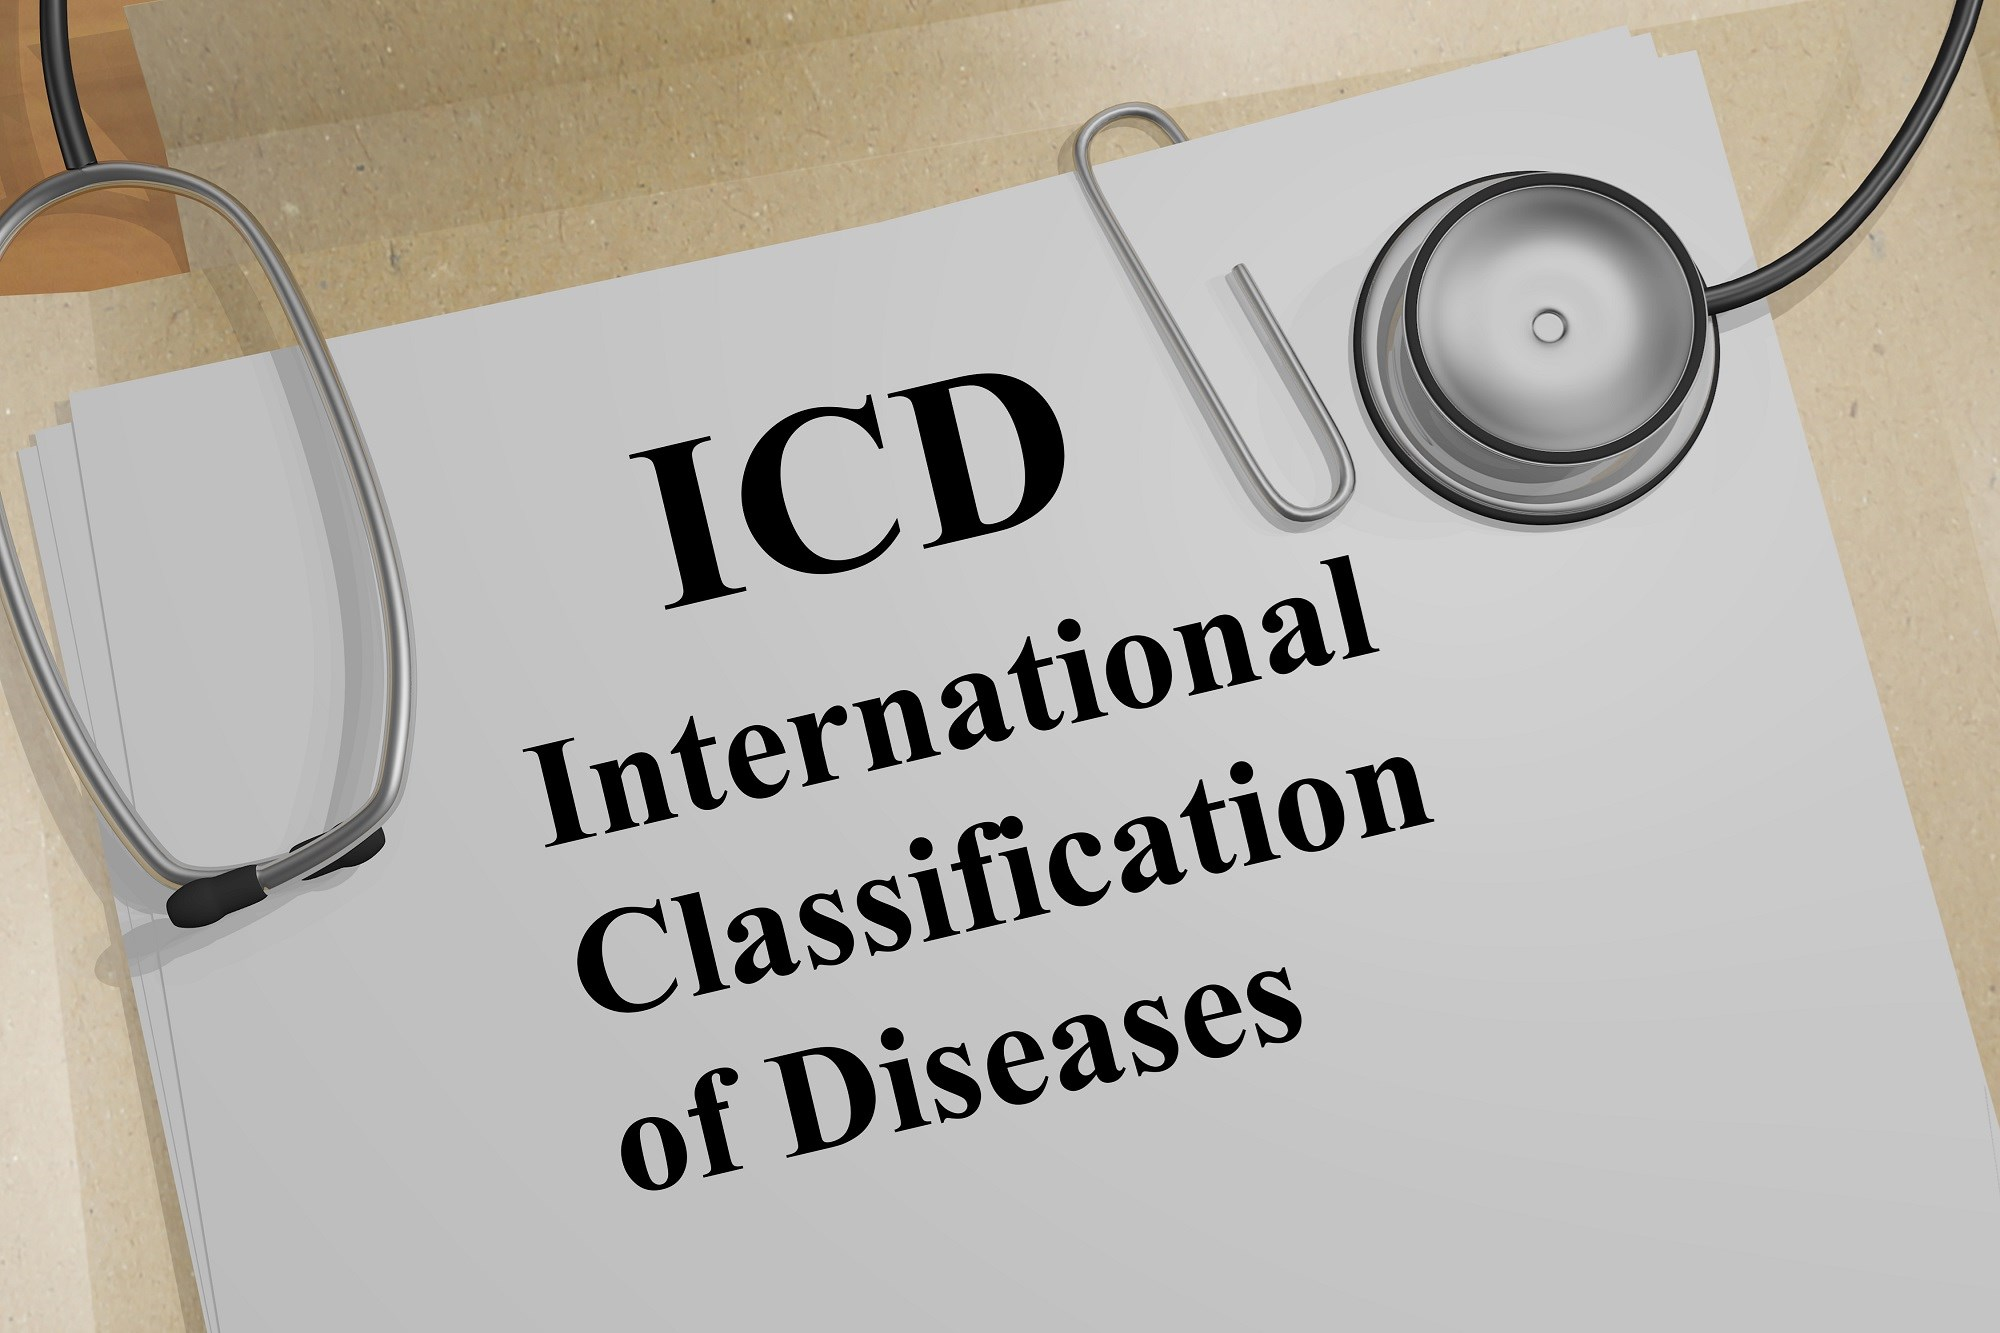 Chronic Neuropathic Pain Updated Classification by IASP for ICD-11